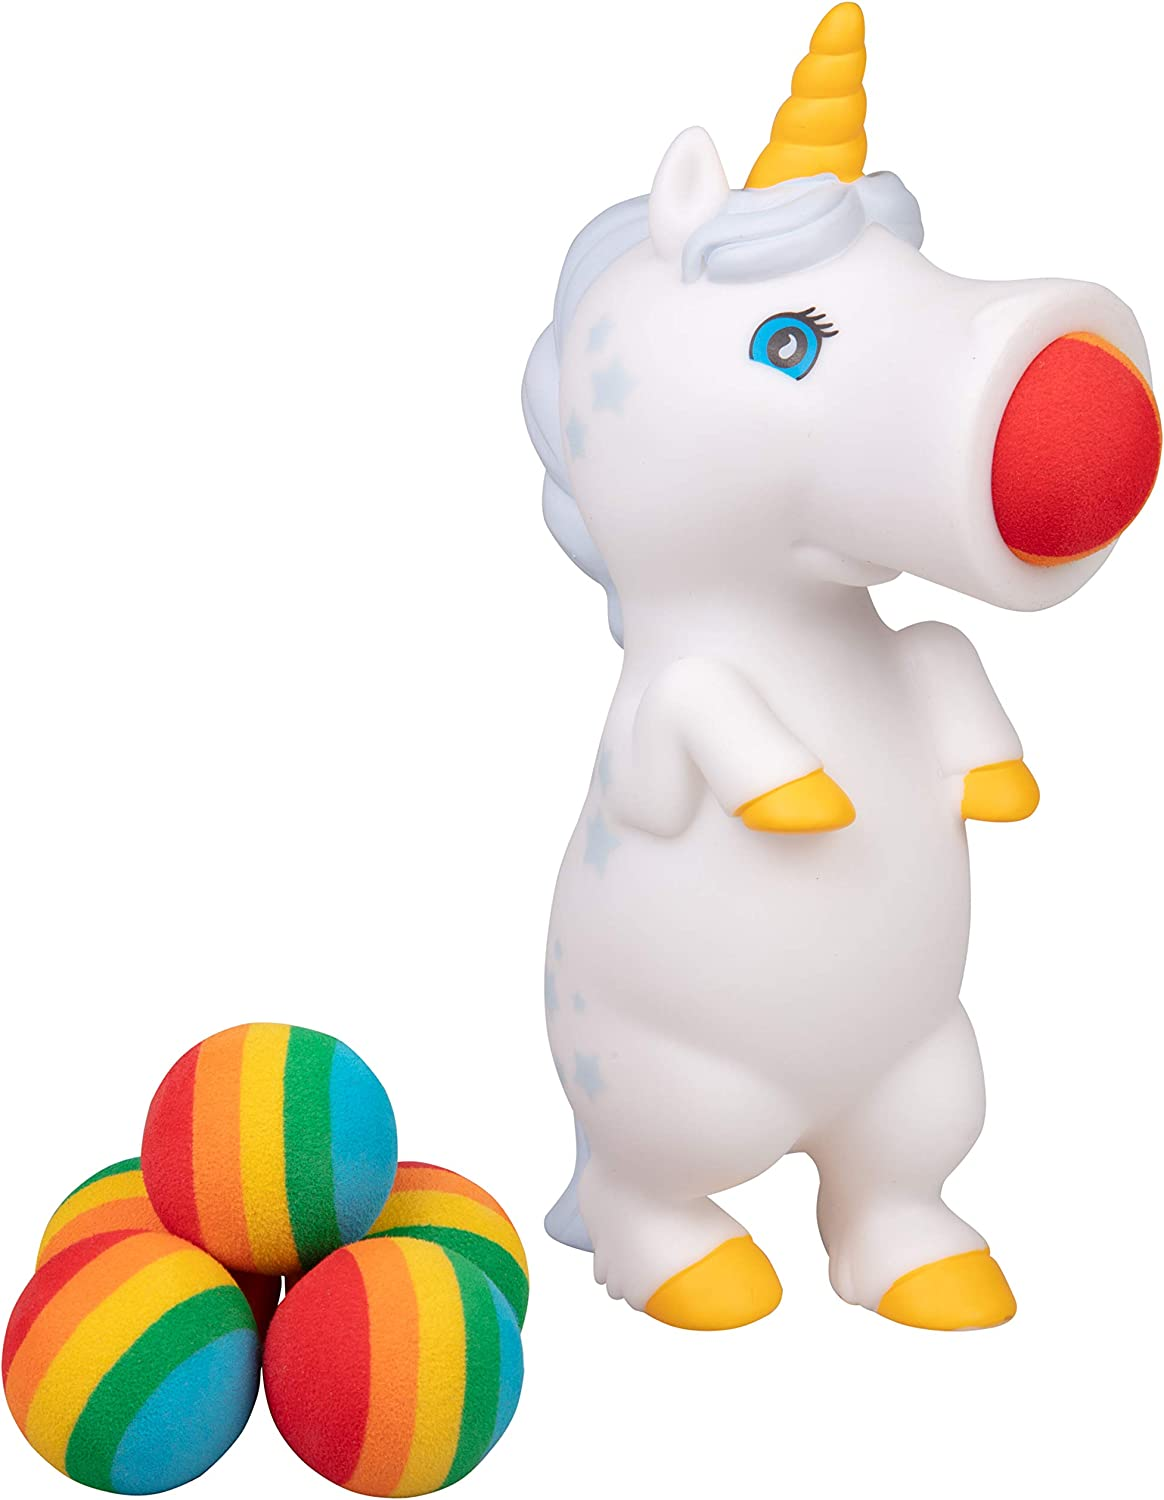 Hog Wild White Unicorn Popper Toy - Shoot Foam Balls Up to 20 Feet - 6 Rainbow Balls Included - Age 4+